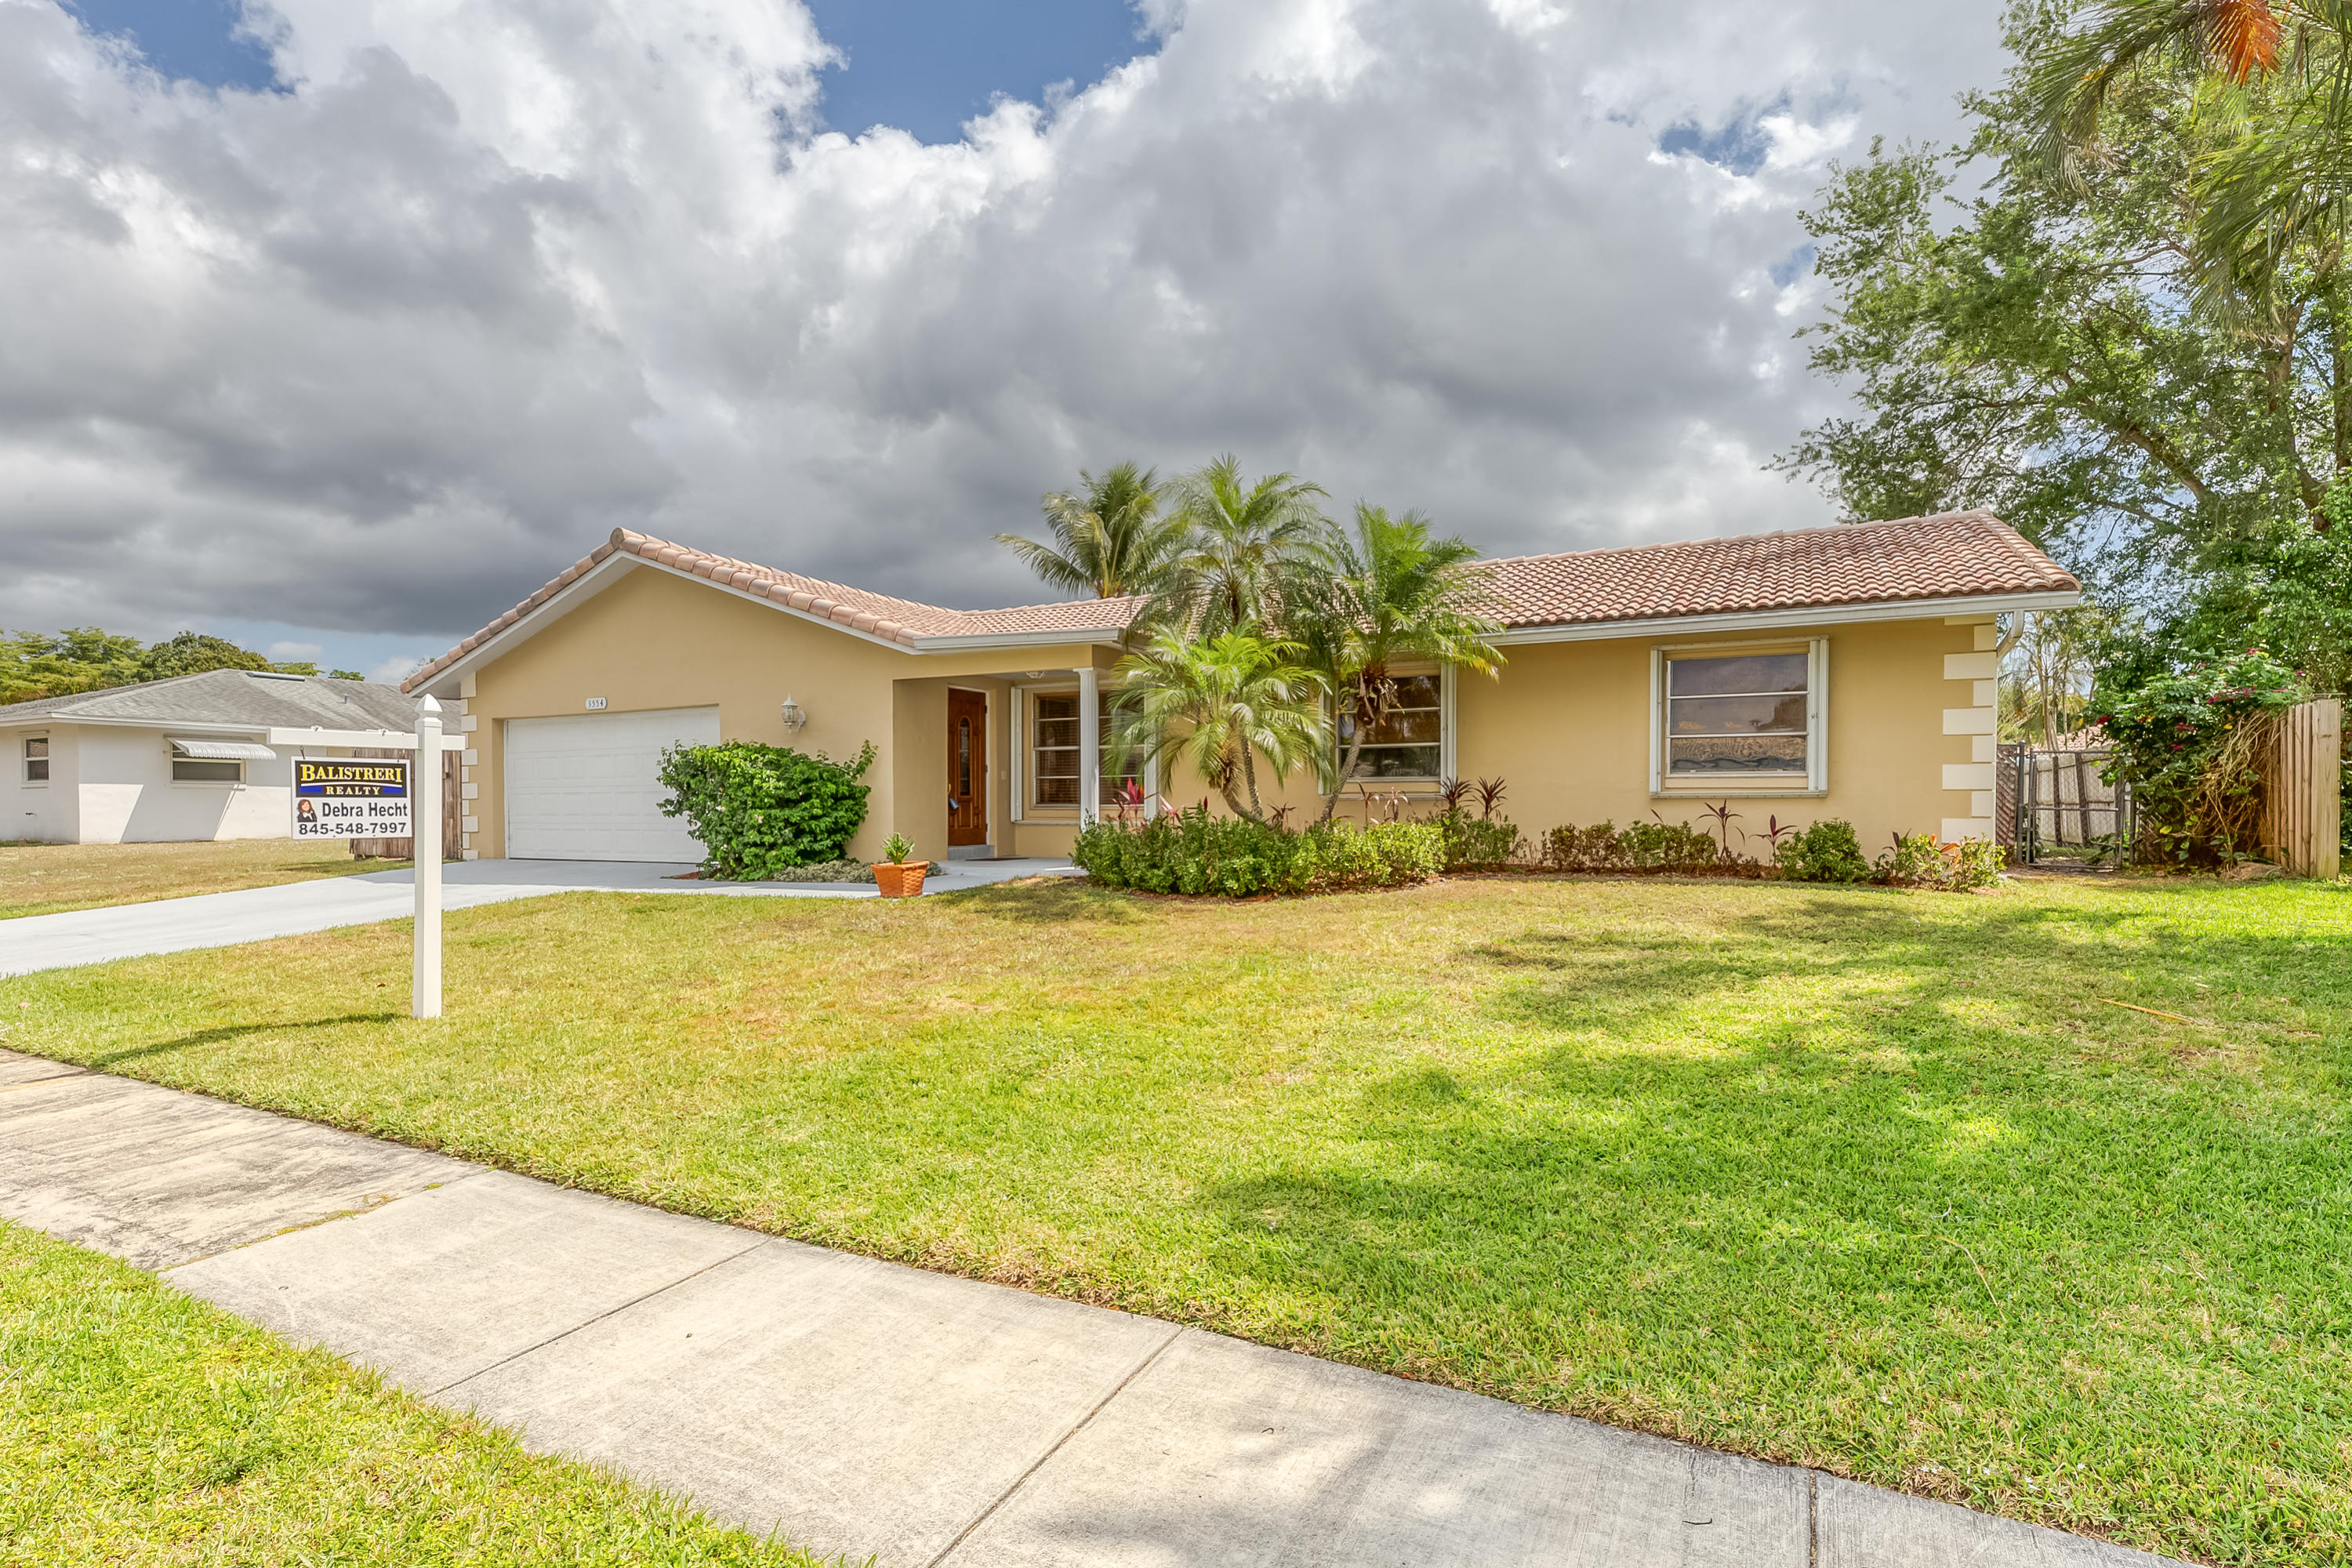 THIS CHARMING HOME IS NESTLED IN CENTRAL BOCA  ALONG THE SOUGHT AFTER ST. ANDREWS CORRIDOR. NO HOA AND MINUTES TO GREAT RATED SCHOOLS INCLUDING PINECREST AND ST. ANDREWS.TERRIFIC AREA FOR FAU AND LYNN UNIVERSITY STUDENTS AND FACULTY..THIS HOME FEATURES EAT-IN-KITCHEN LEADING TO A SPACIOUS SCREENED ENCLOSED PATIO. THERE IS A LARGE FENCED IN BACK YARD WITH POOL FOR PLAYING. THERE IS  AN INDOOR LAUNDRY CLOSET OFF OF THE KITCHEN FOR CONVENIENCE. THIS IS A PERFECT STARTER HOME OR EMPTY NESTERS. CLOSE TO I-95, TURNPIKE, SHOPPING AND BEACHES. A MUST SEE, WON'T LAST LONG AND RIGHT IN A GREAT LOCATION! NEW ELECTRICAL PANEL INSIDE AND OUTSIDE, THE STOVE, MICROWAVE AND REFRIGERATOR , DECEMBER 2020THE BIG T.V. IN LIVING ROOM ON WALL DOES NOT CONVEY WIT